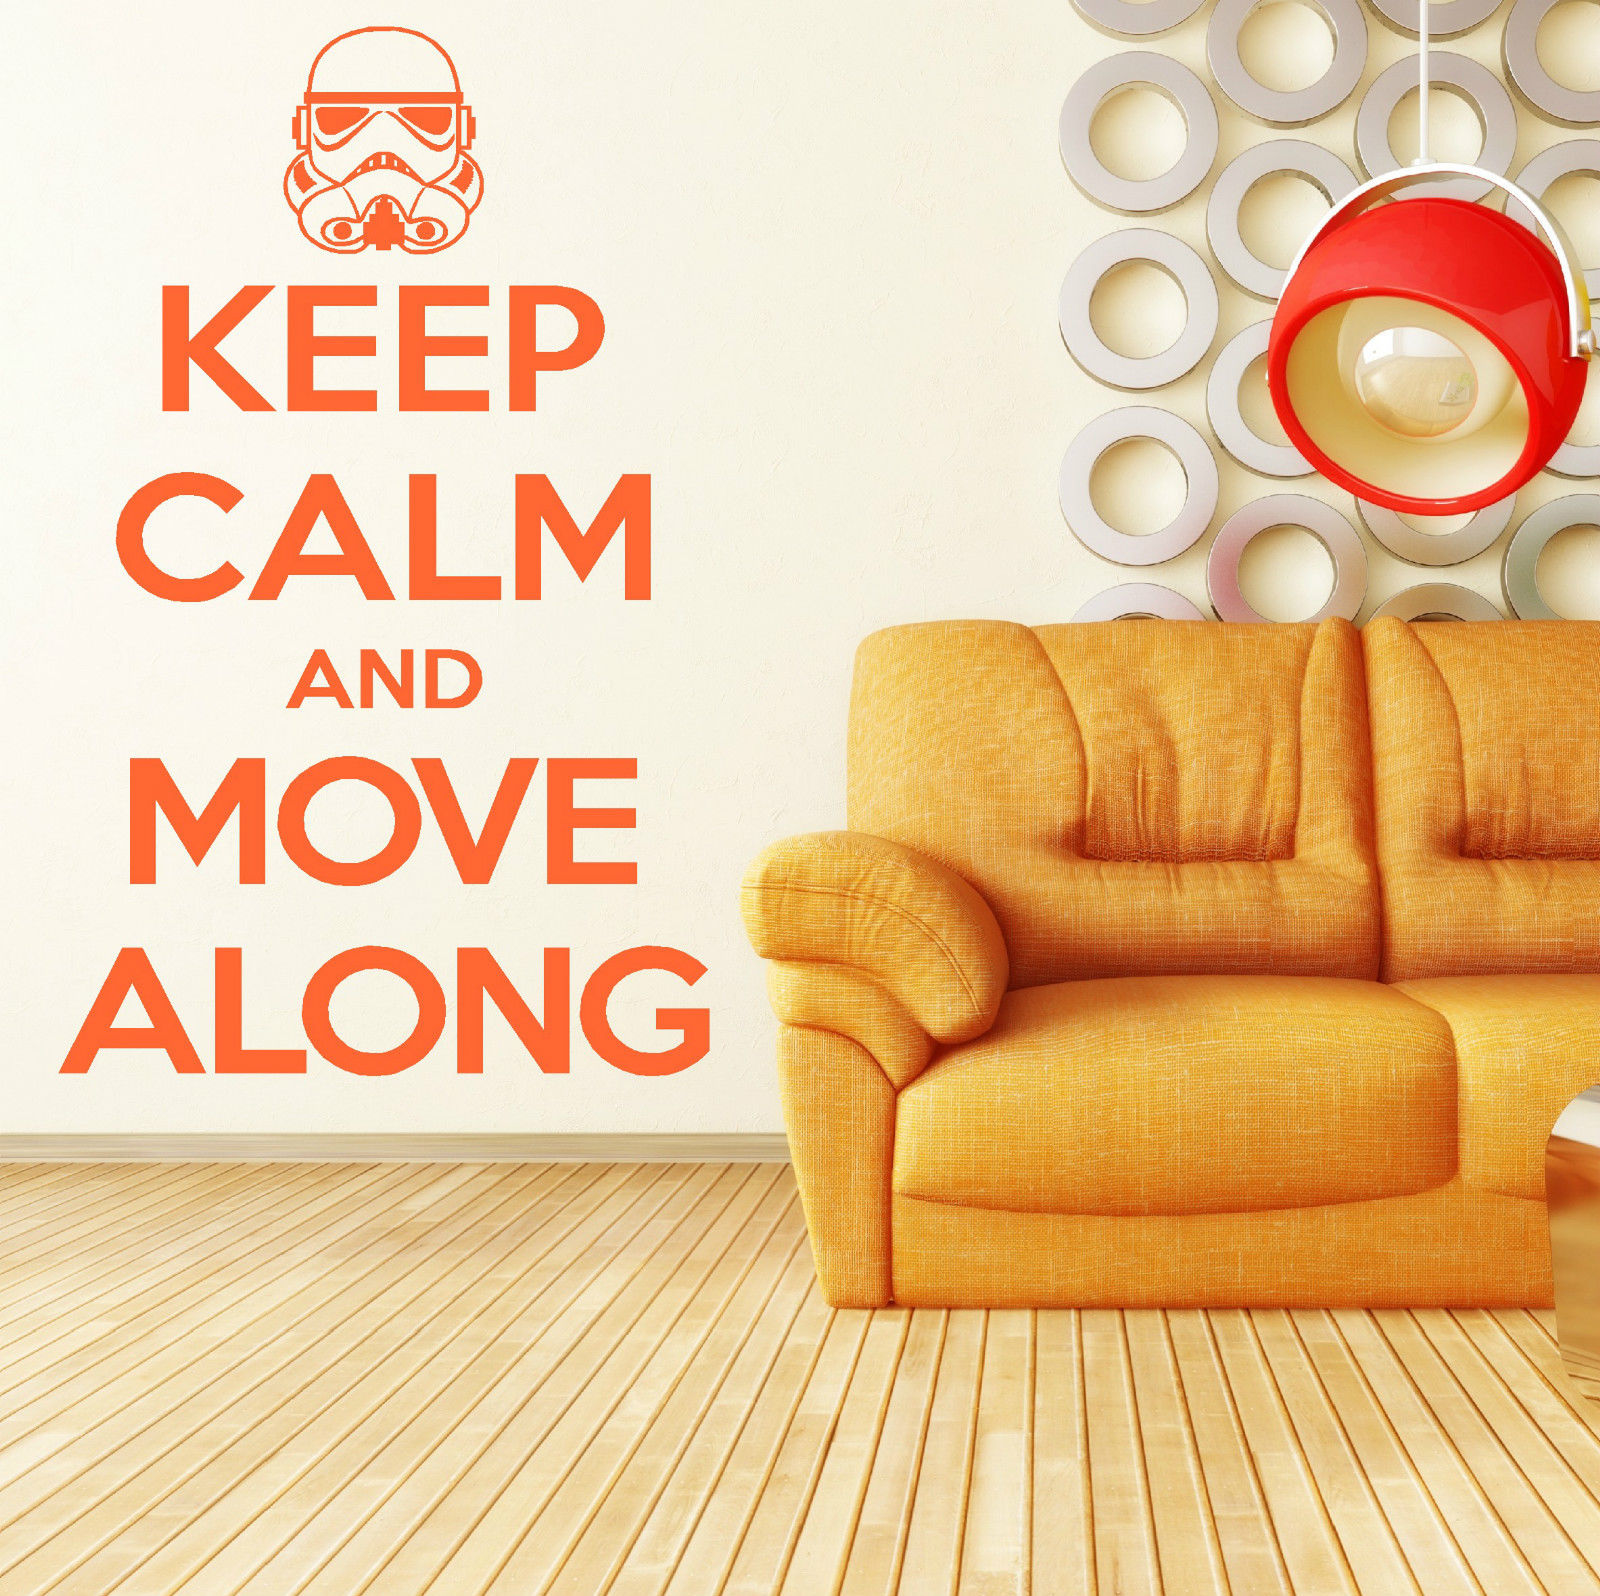 HWHD KEEP CALM AND MOVE ALONG Star Wars Stormtrooper VINYL WALL ART ...